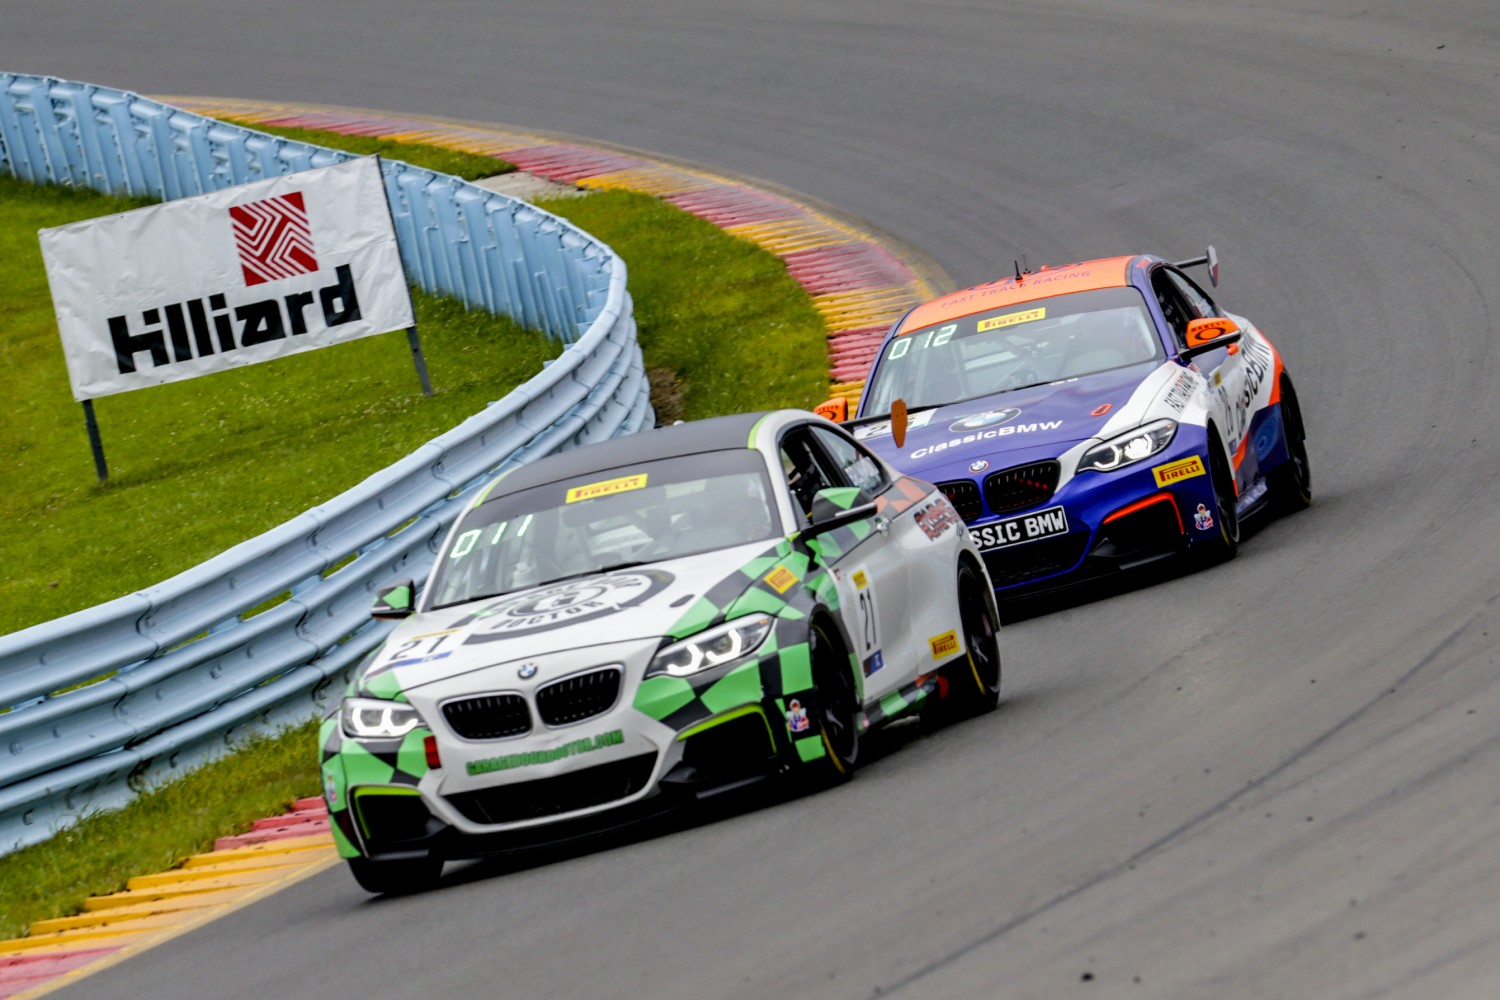 #21 BMW M240iR Cup of Mark Brummond, Auto Technic Racing, Watkins Glen World Challenge America, Watkins Glen NY  | Brian Cleary/SRO